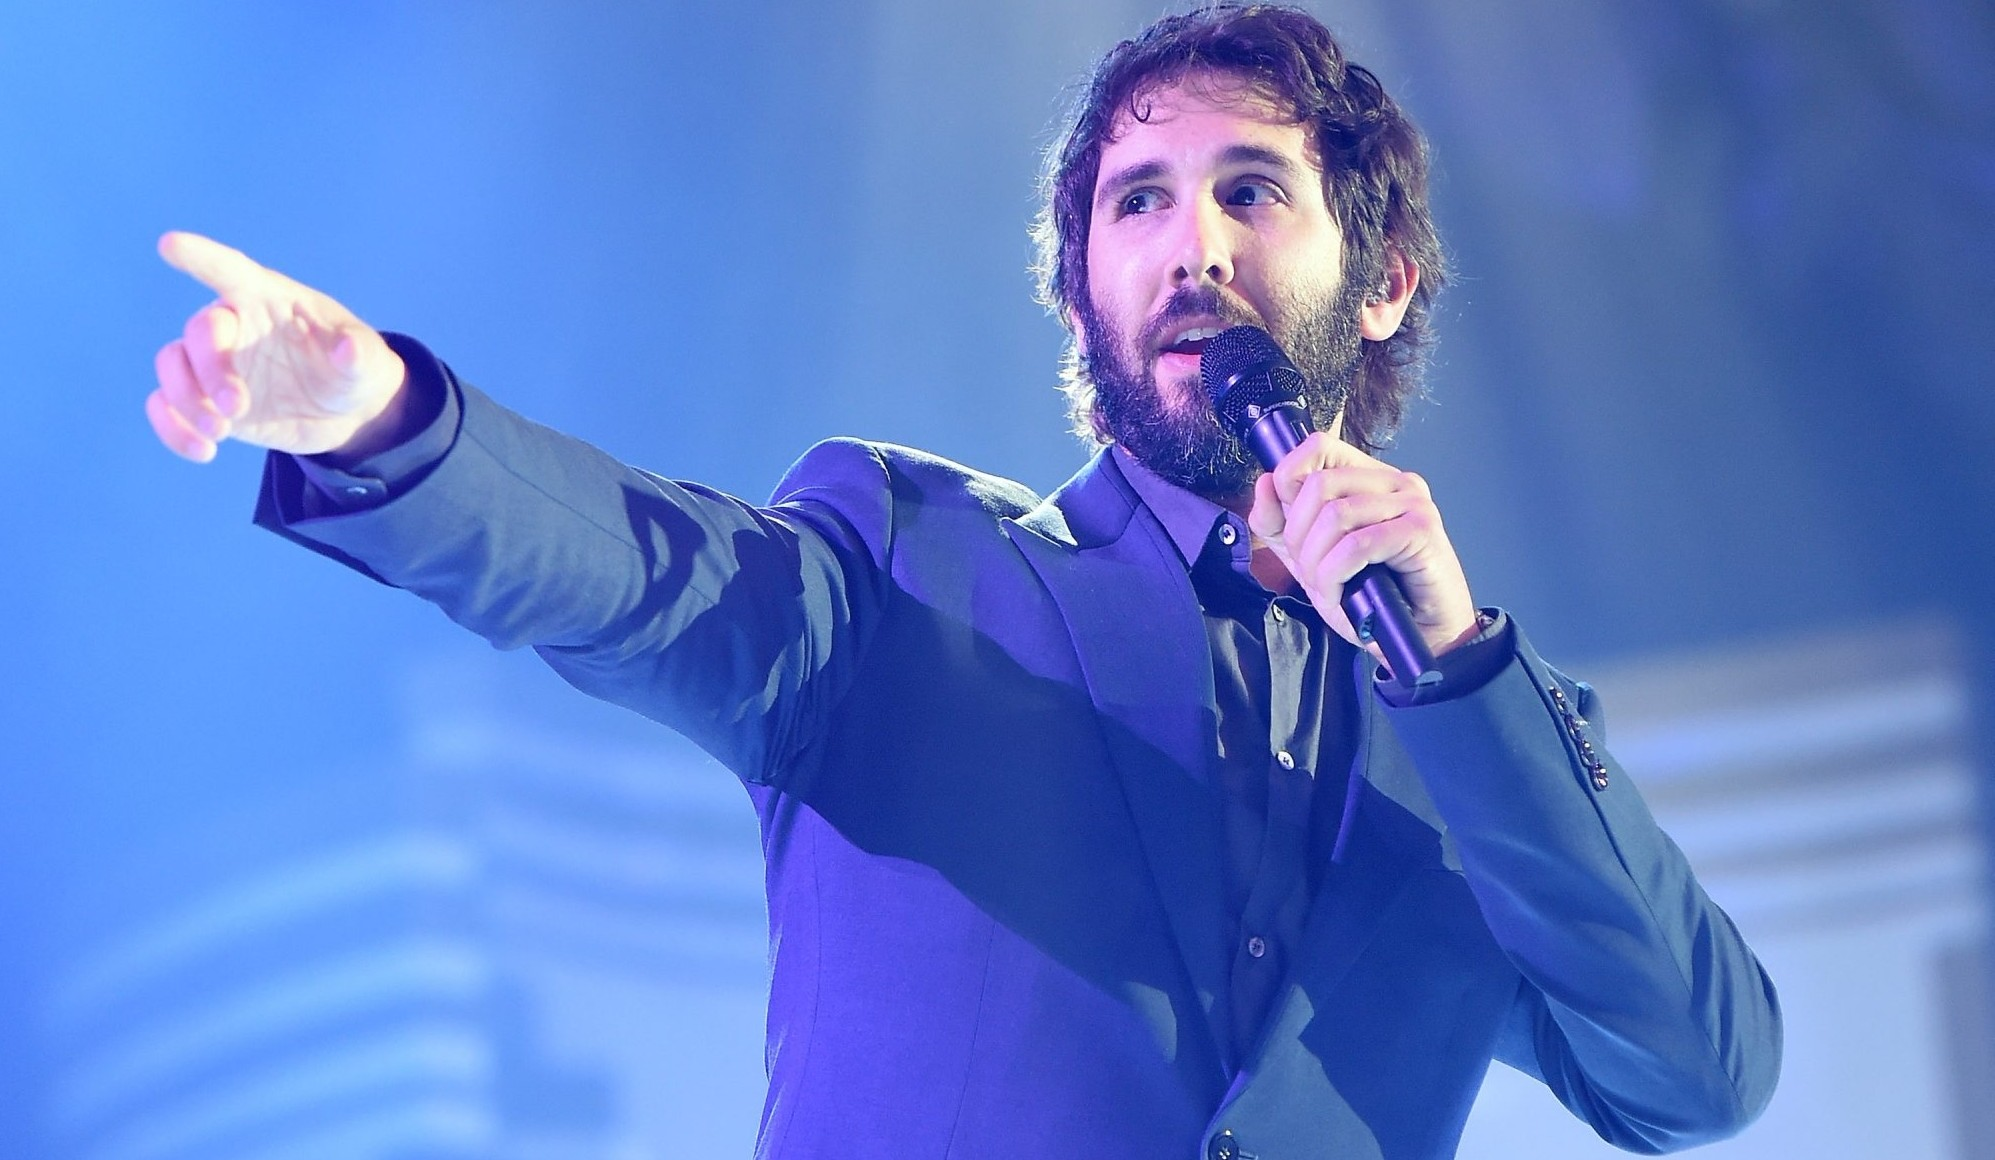 Josh Groban will perform Oct. 7 in Shea's Performing Arts Center. (Getty Images)